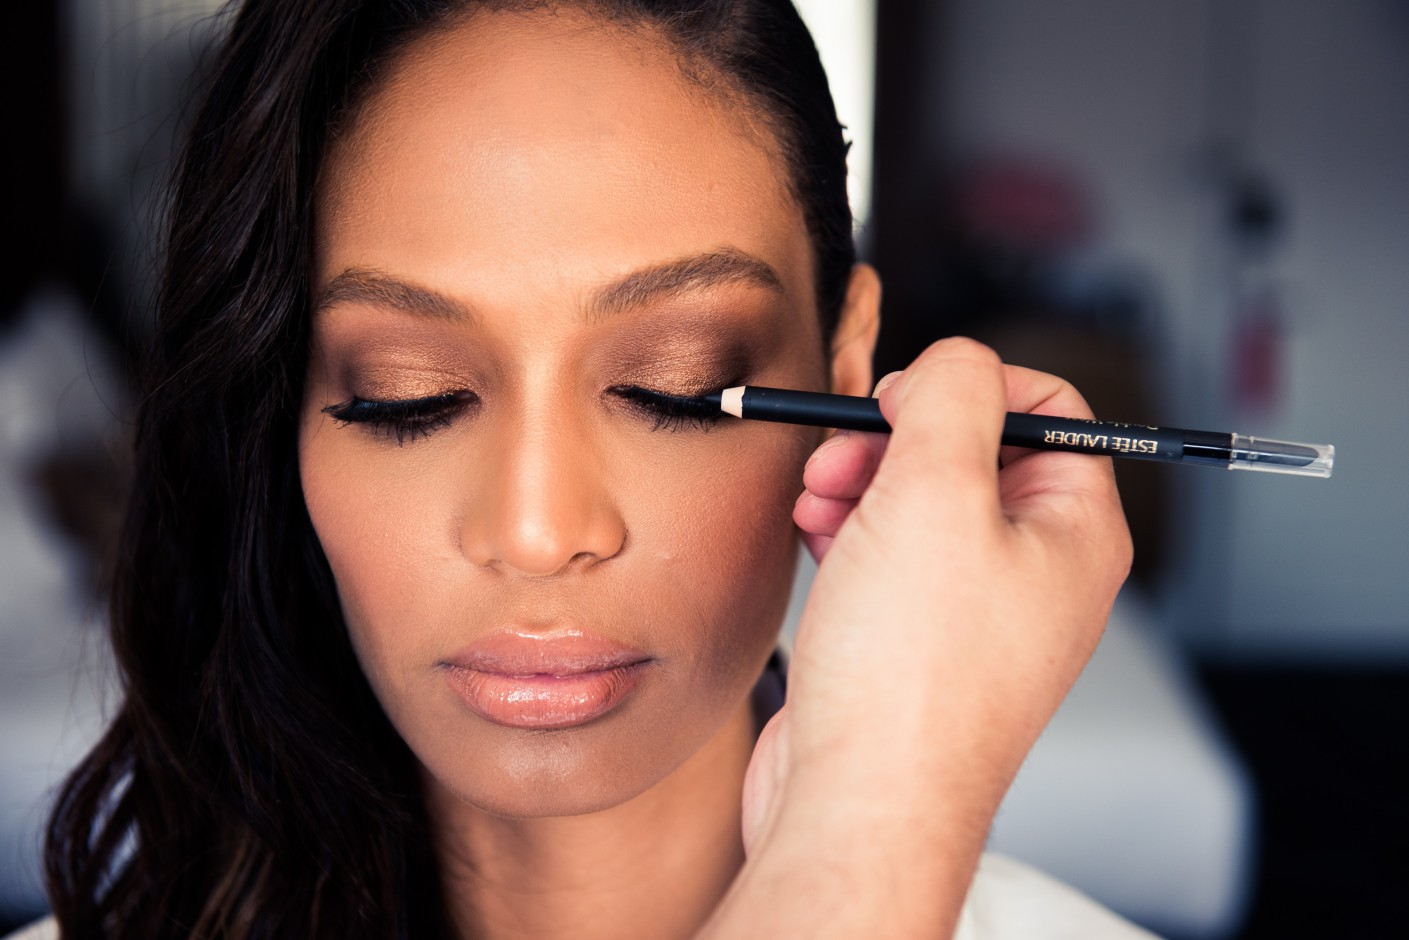 Joan Smalls Eyes Makeup - Joan Smalls Eyes Makeup